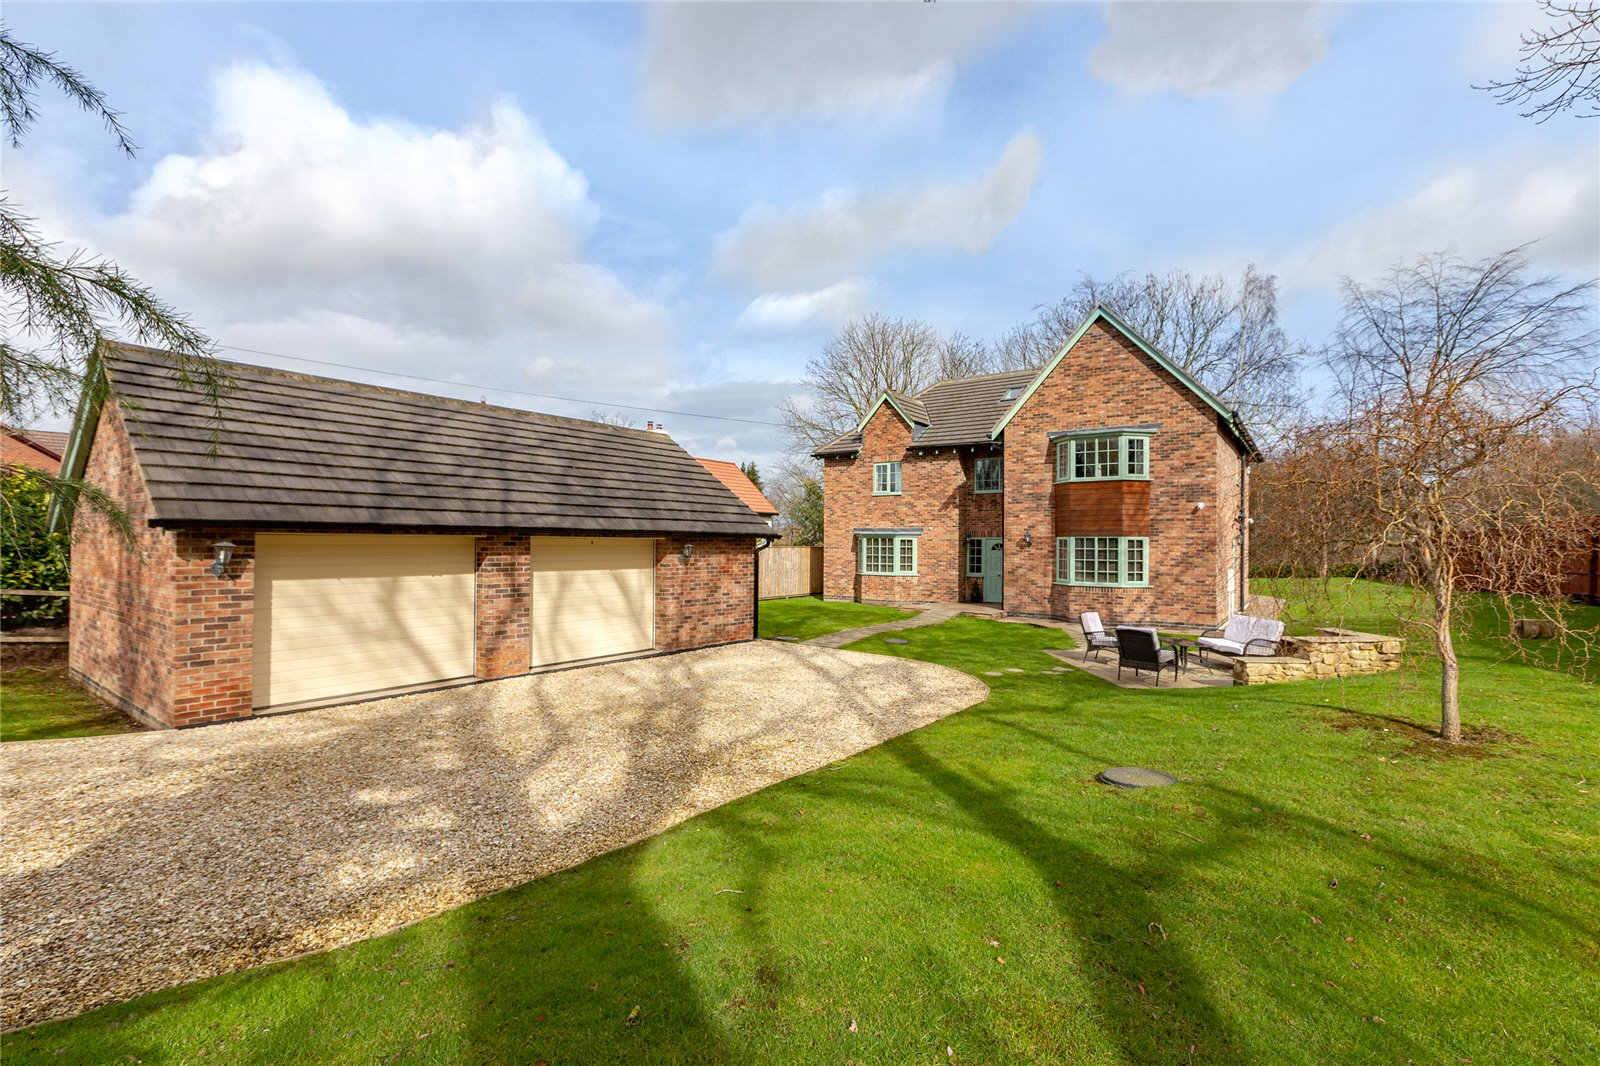 6 bed house for sale in Ladgate Lane, Middlesbrough - Property Image 1